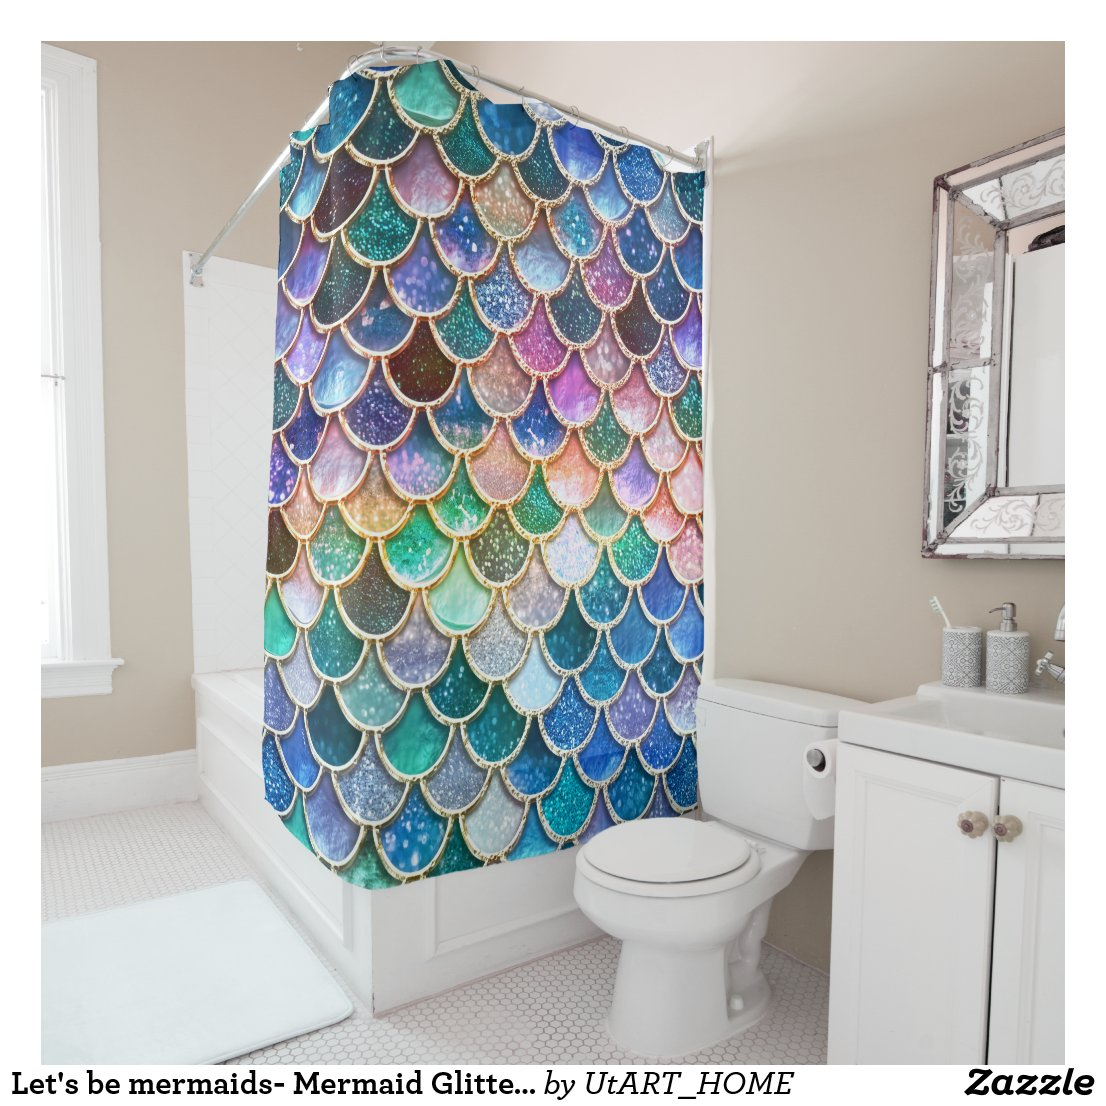 Let's be mermaids- Mermaid Glitter- Mermaid Scales Shower Curtain